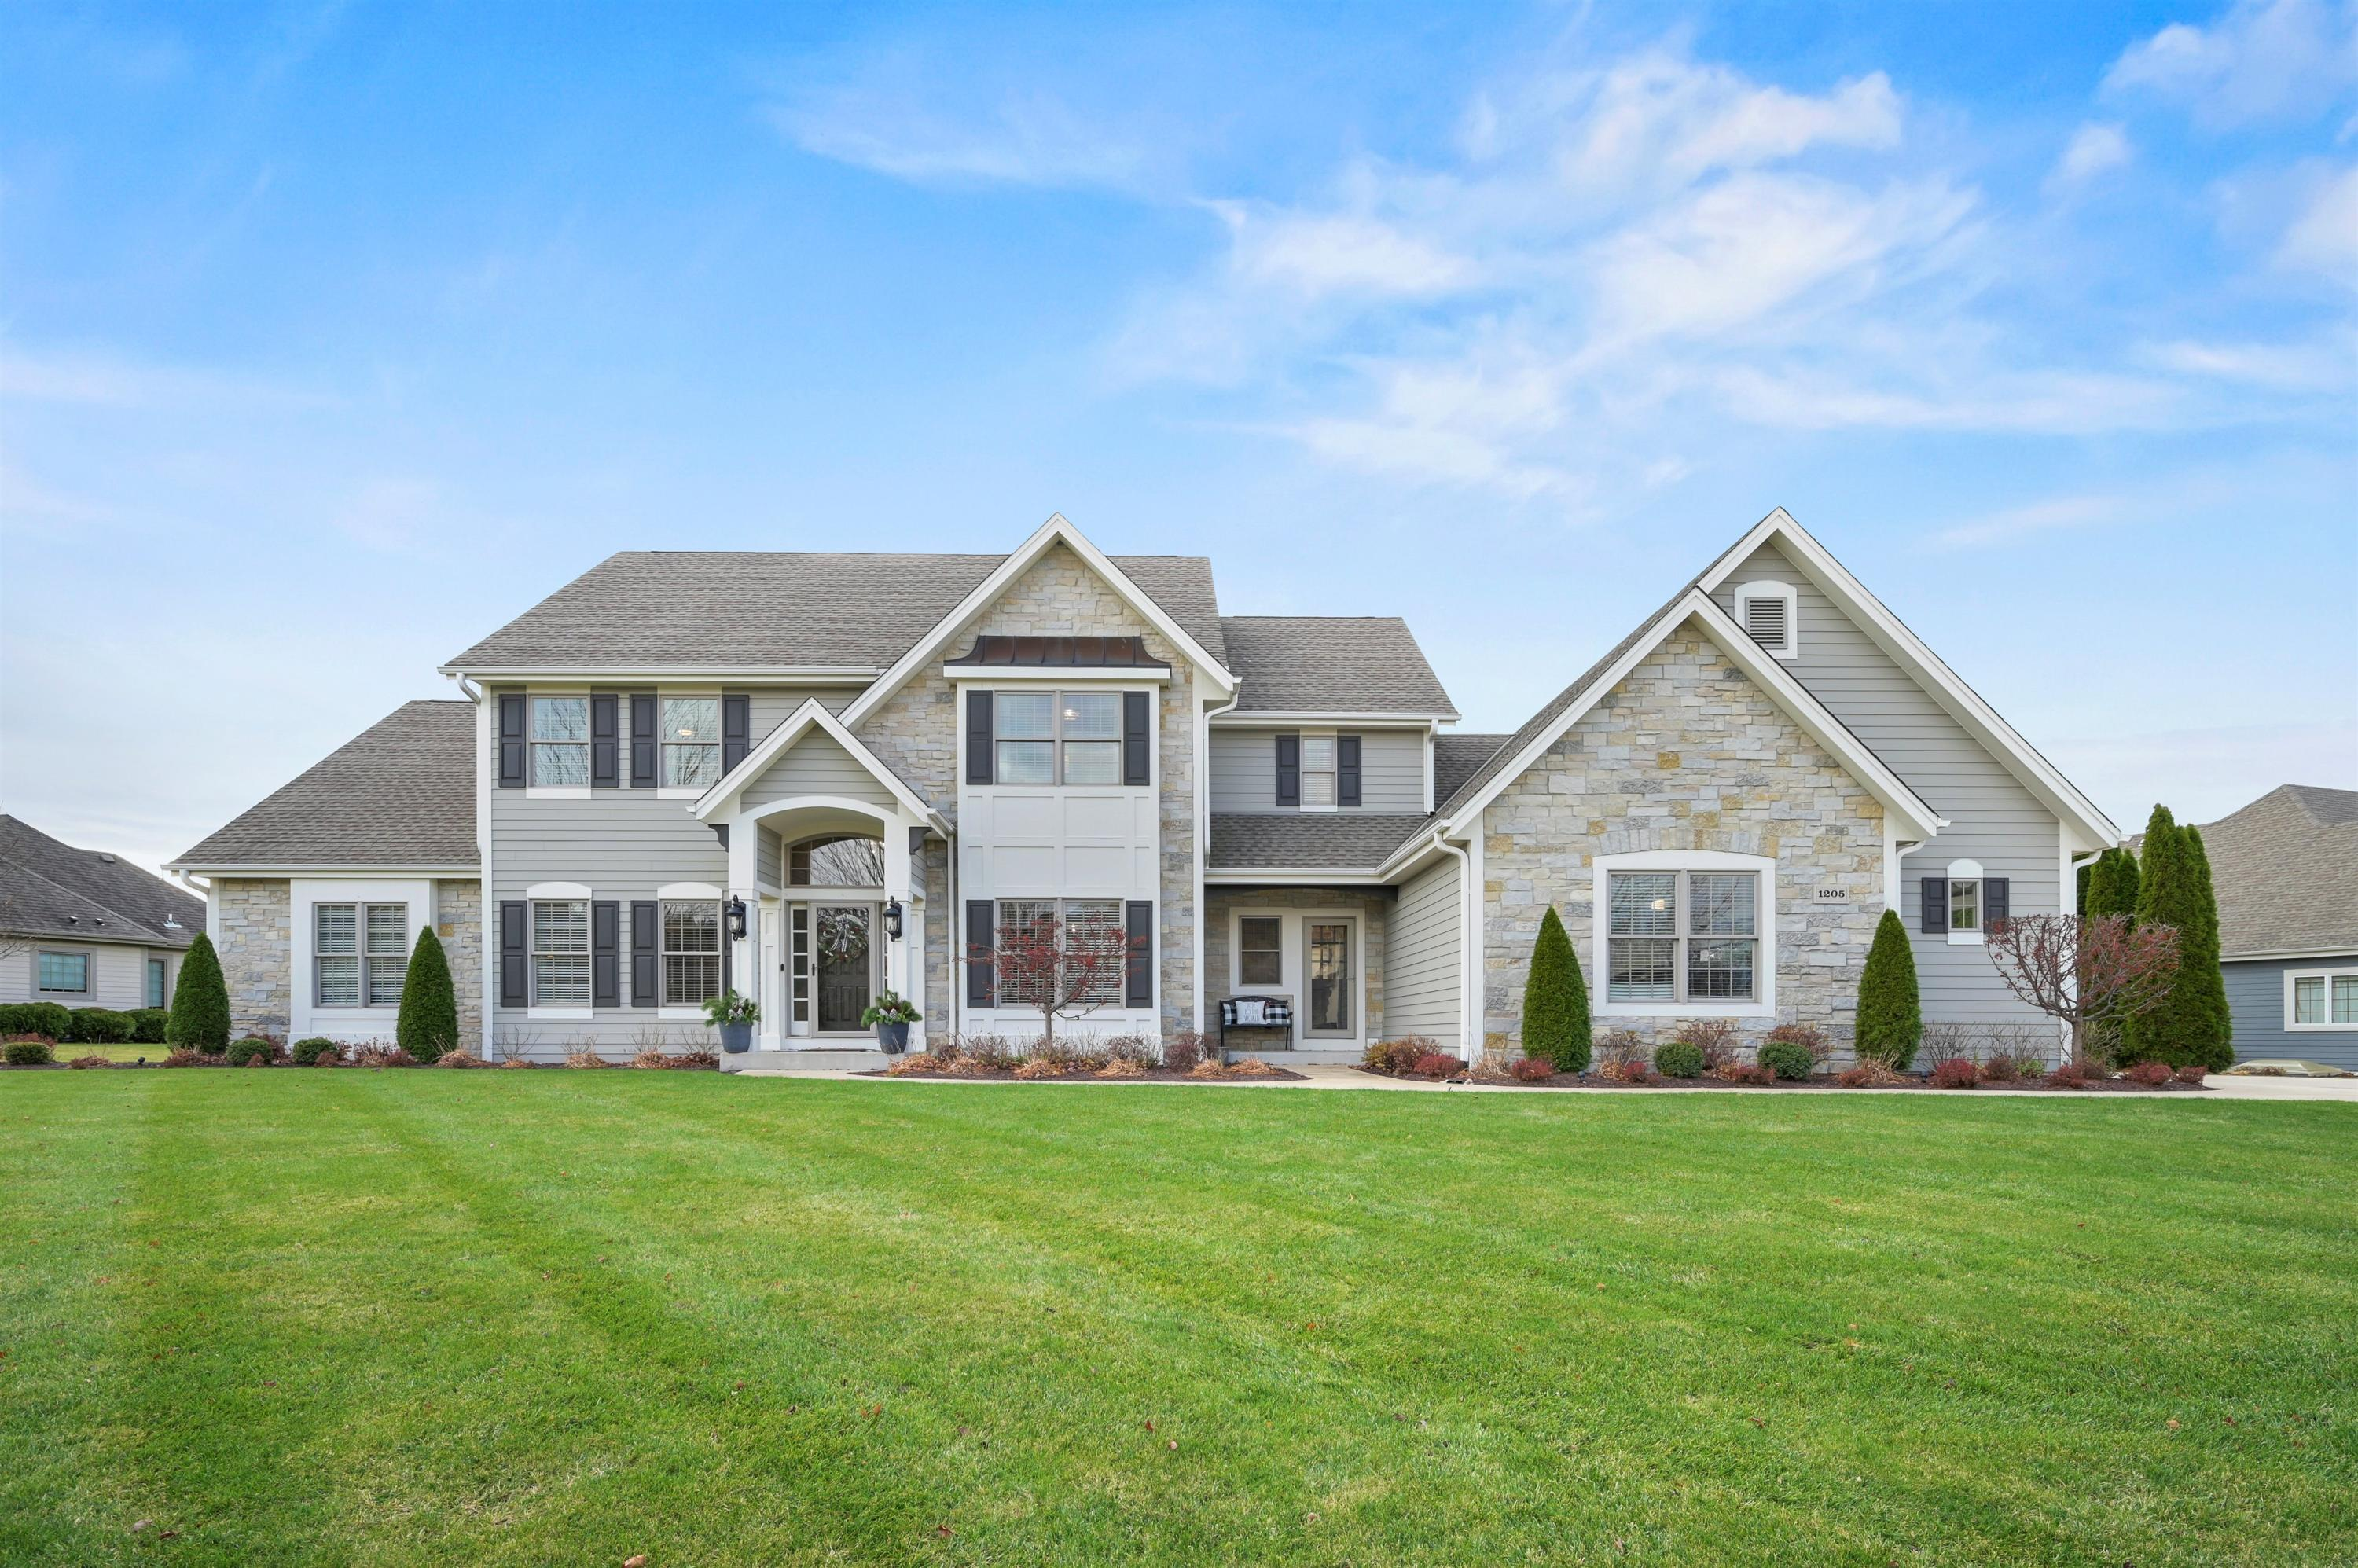 1205 Four Winds Way, Hartland, Wisconsin 53029, 5 Bedrooms Bedrooms, 12 Rooms Rooms,4 BathroomsBathrooms,Single-Family,For Sale,Four Winds Way,1719068